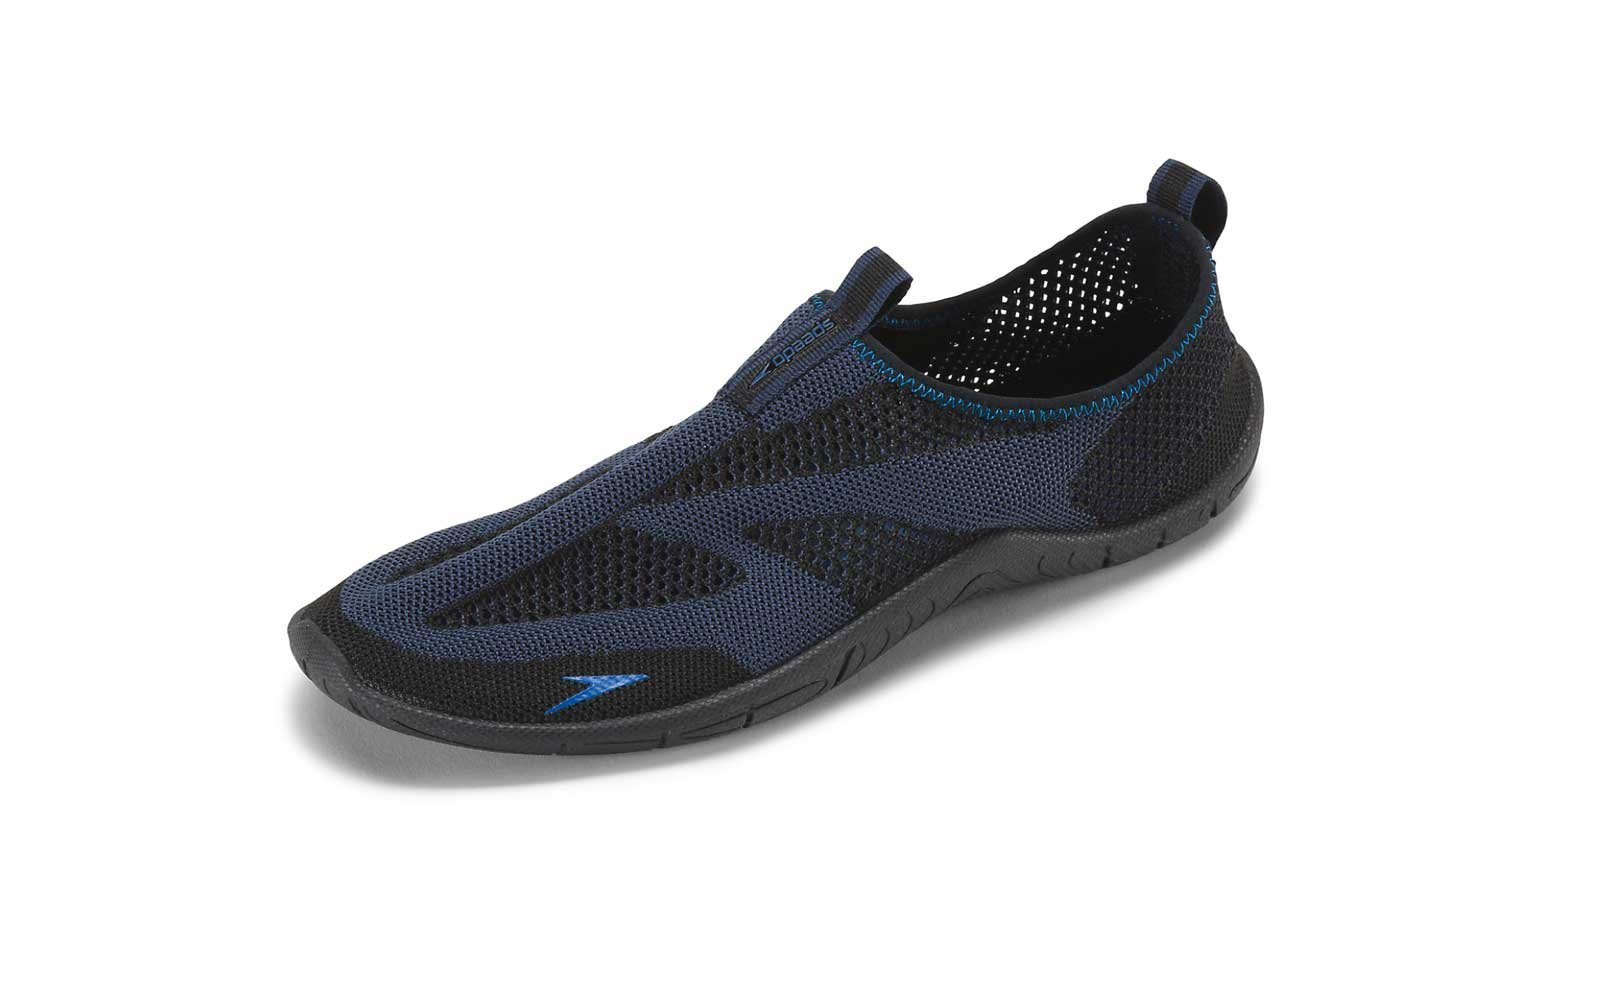 Speedo Surf Knit Water Shoes